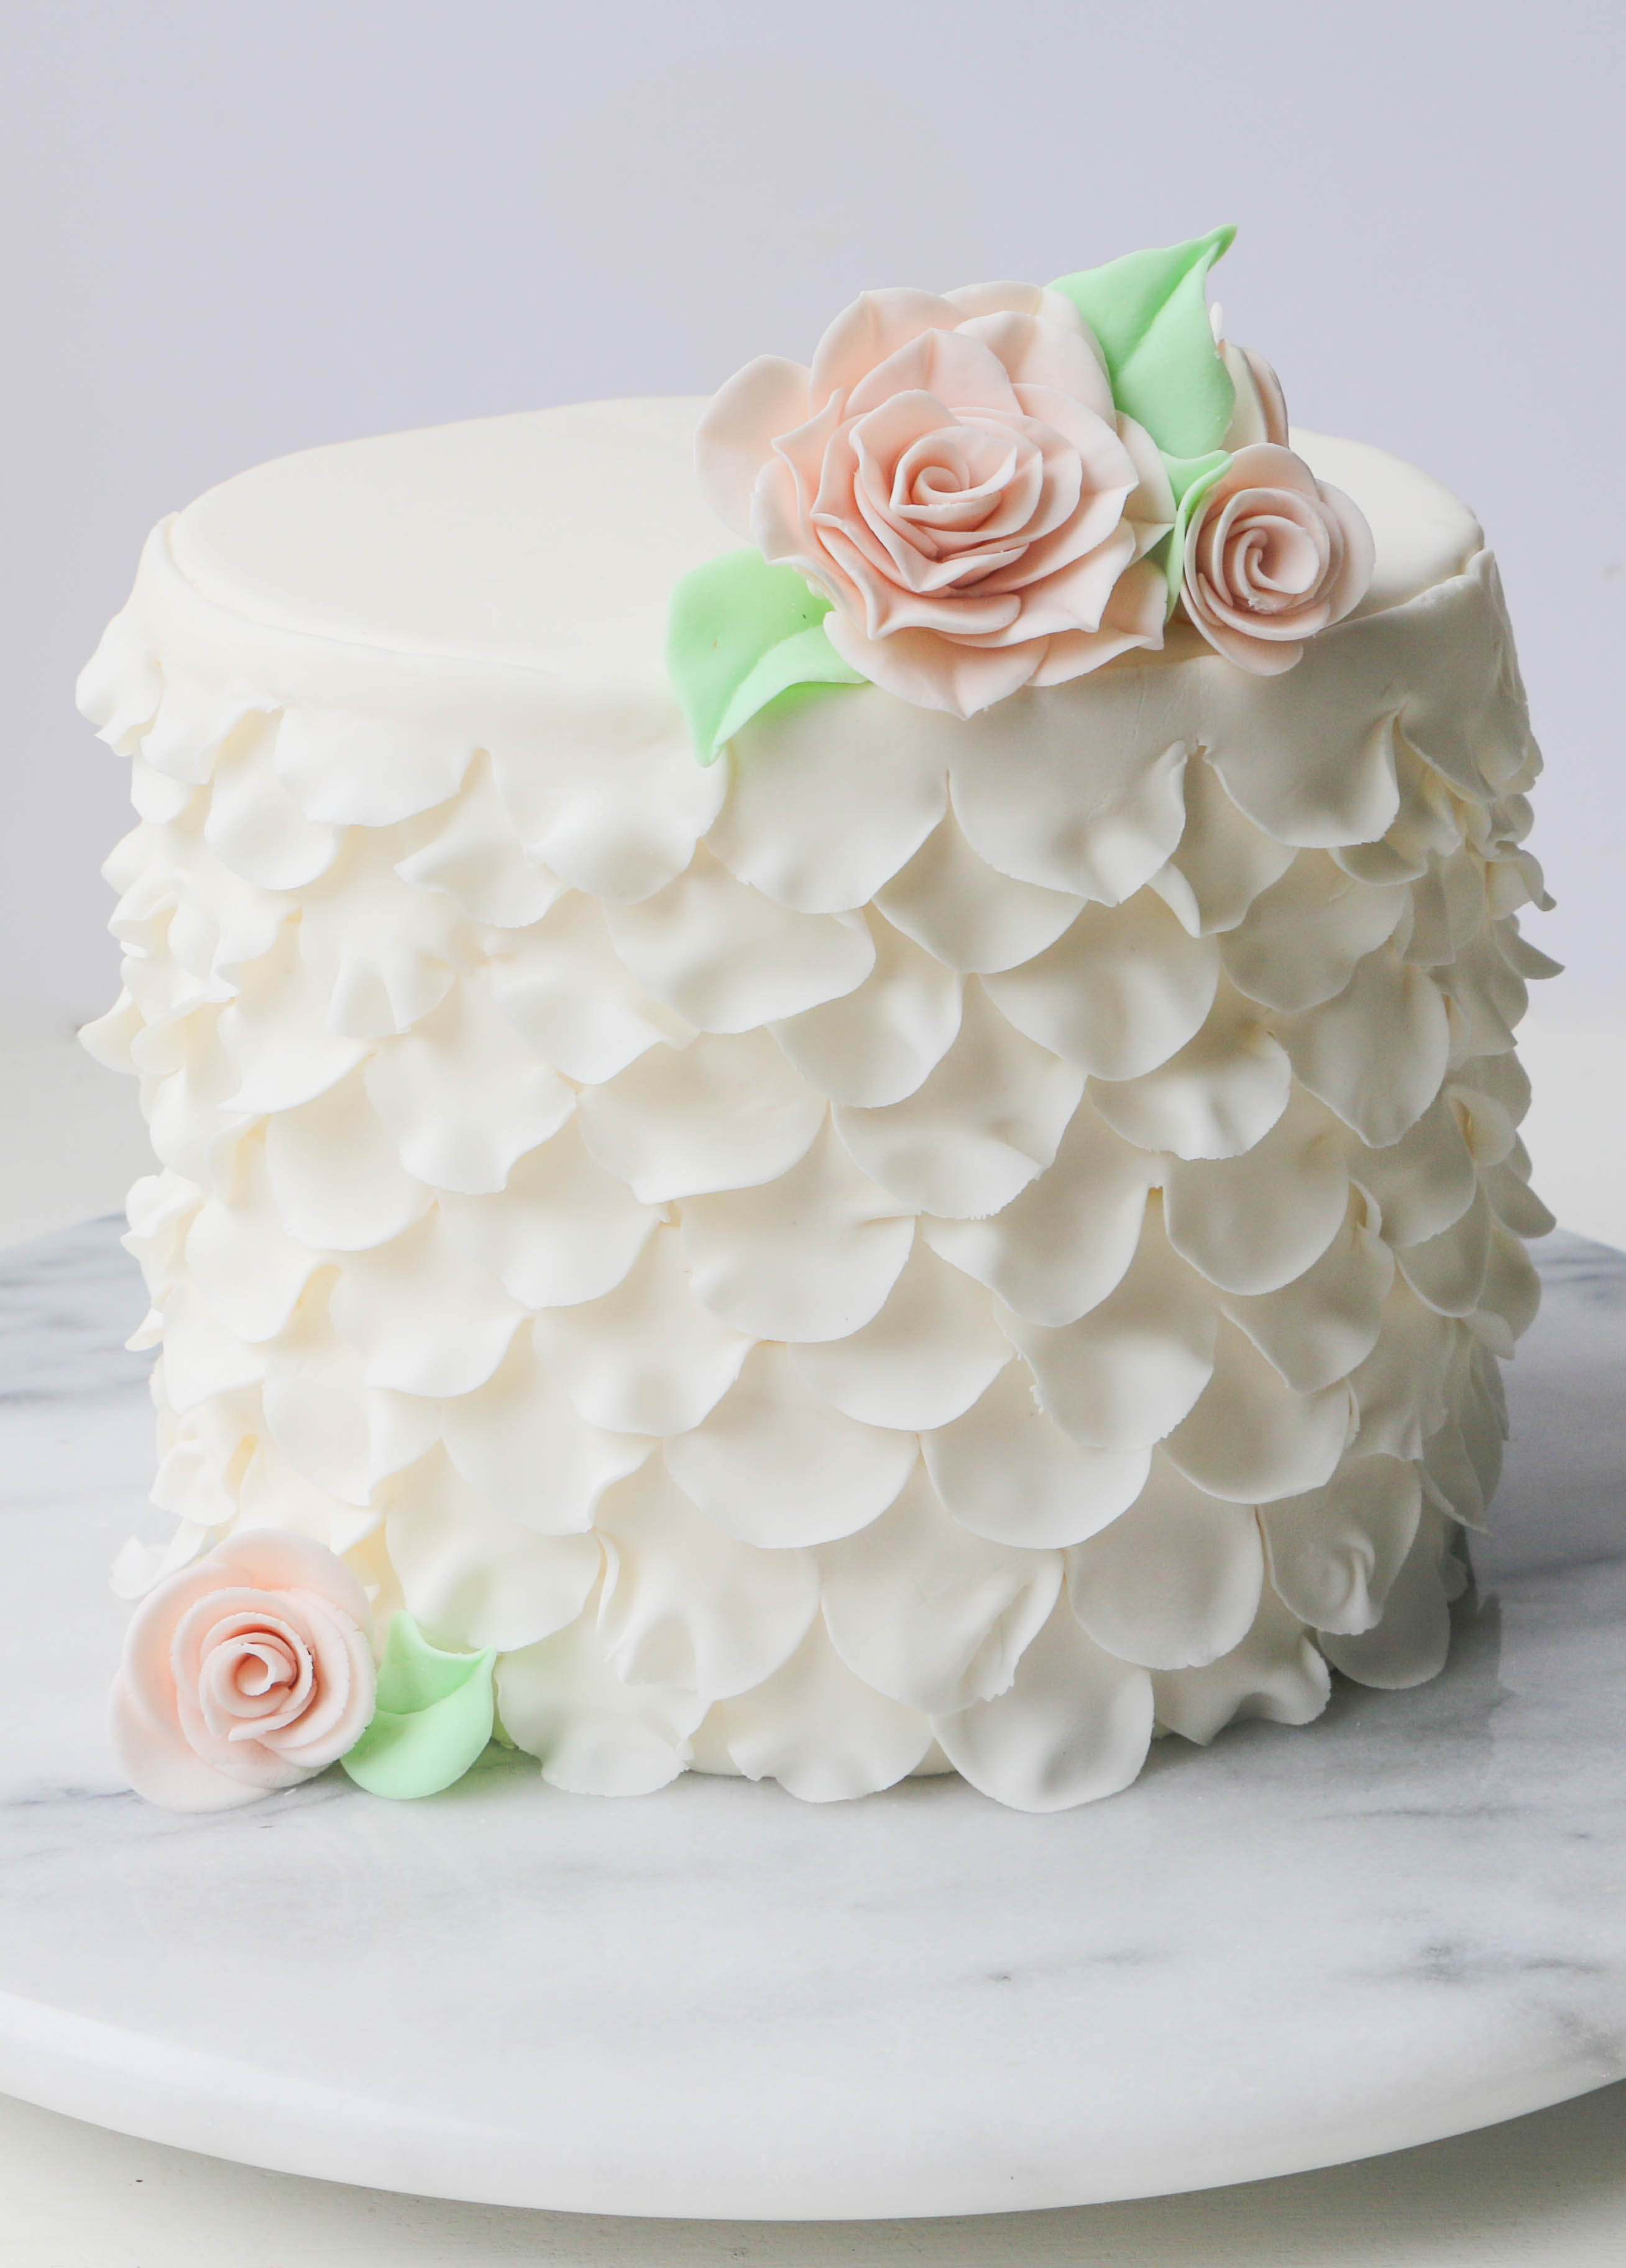 Finished Ruffles and Roses Cake | Erin Gardner | Craftsy